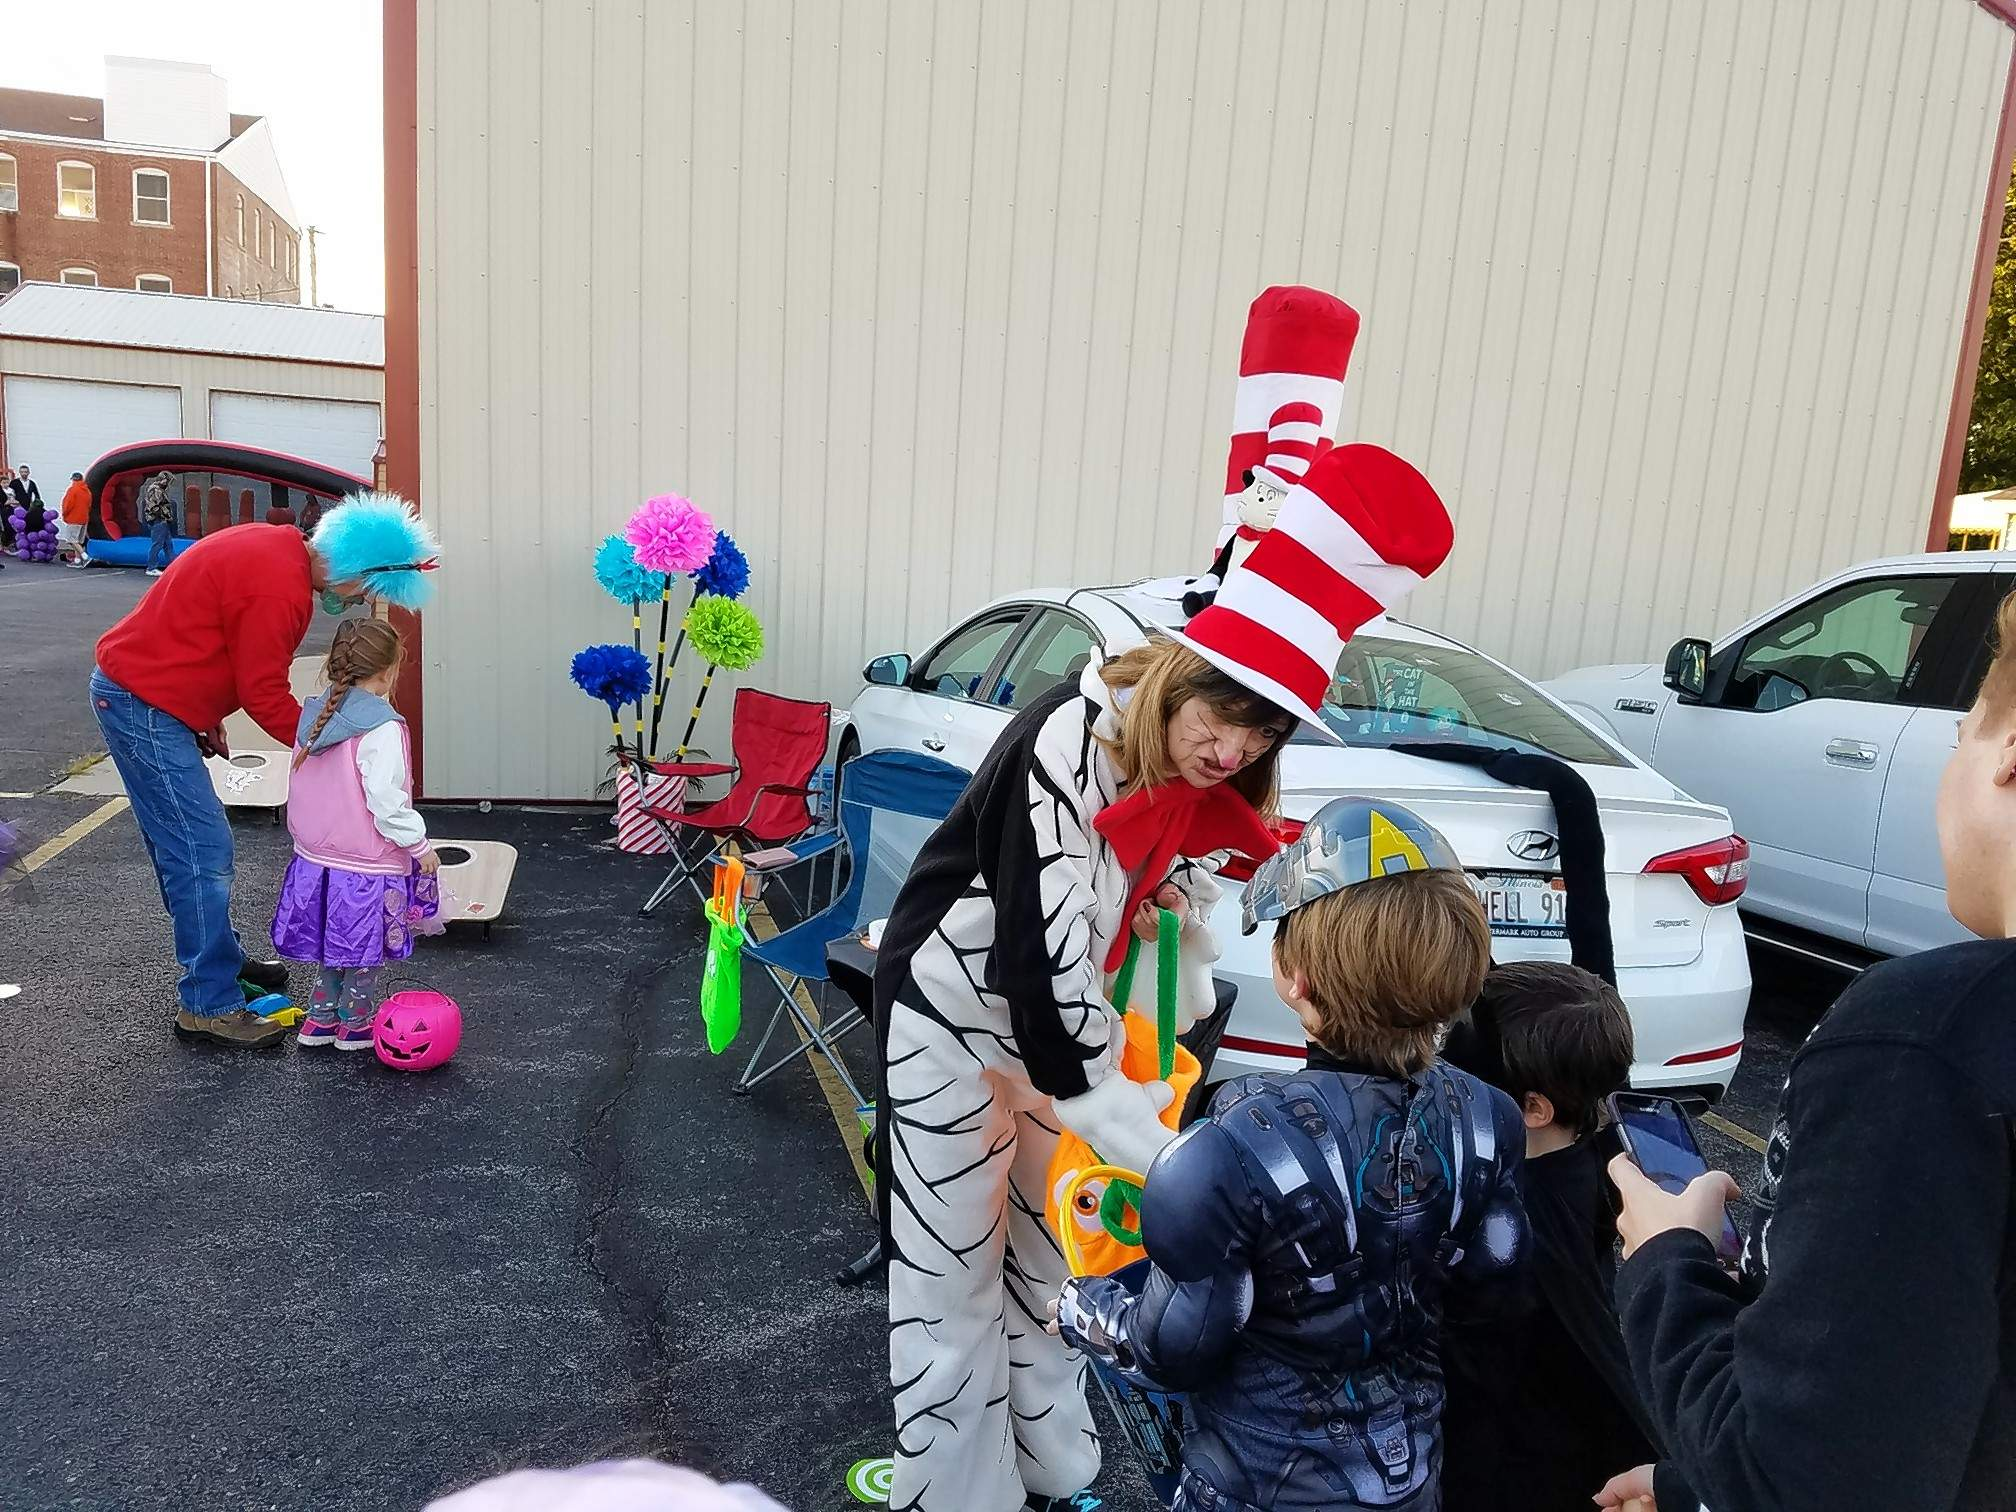 Gail Ewell, dressed as The Cat in the Hat of Dr. Seuss fame, passes out candy at the Halloween Trunk or Treat celebration Saturday hosted by the First Baptist Church of Marion.